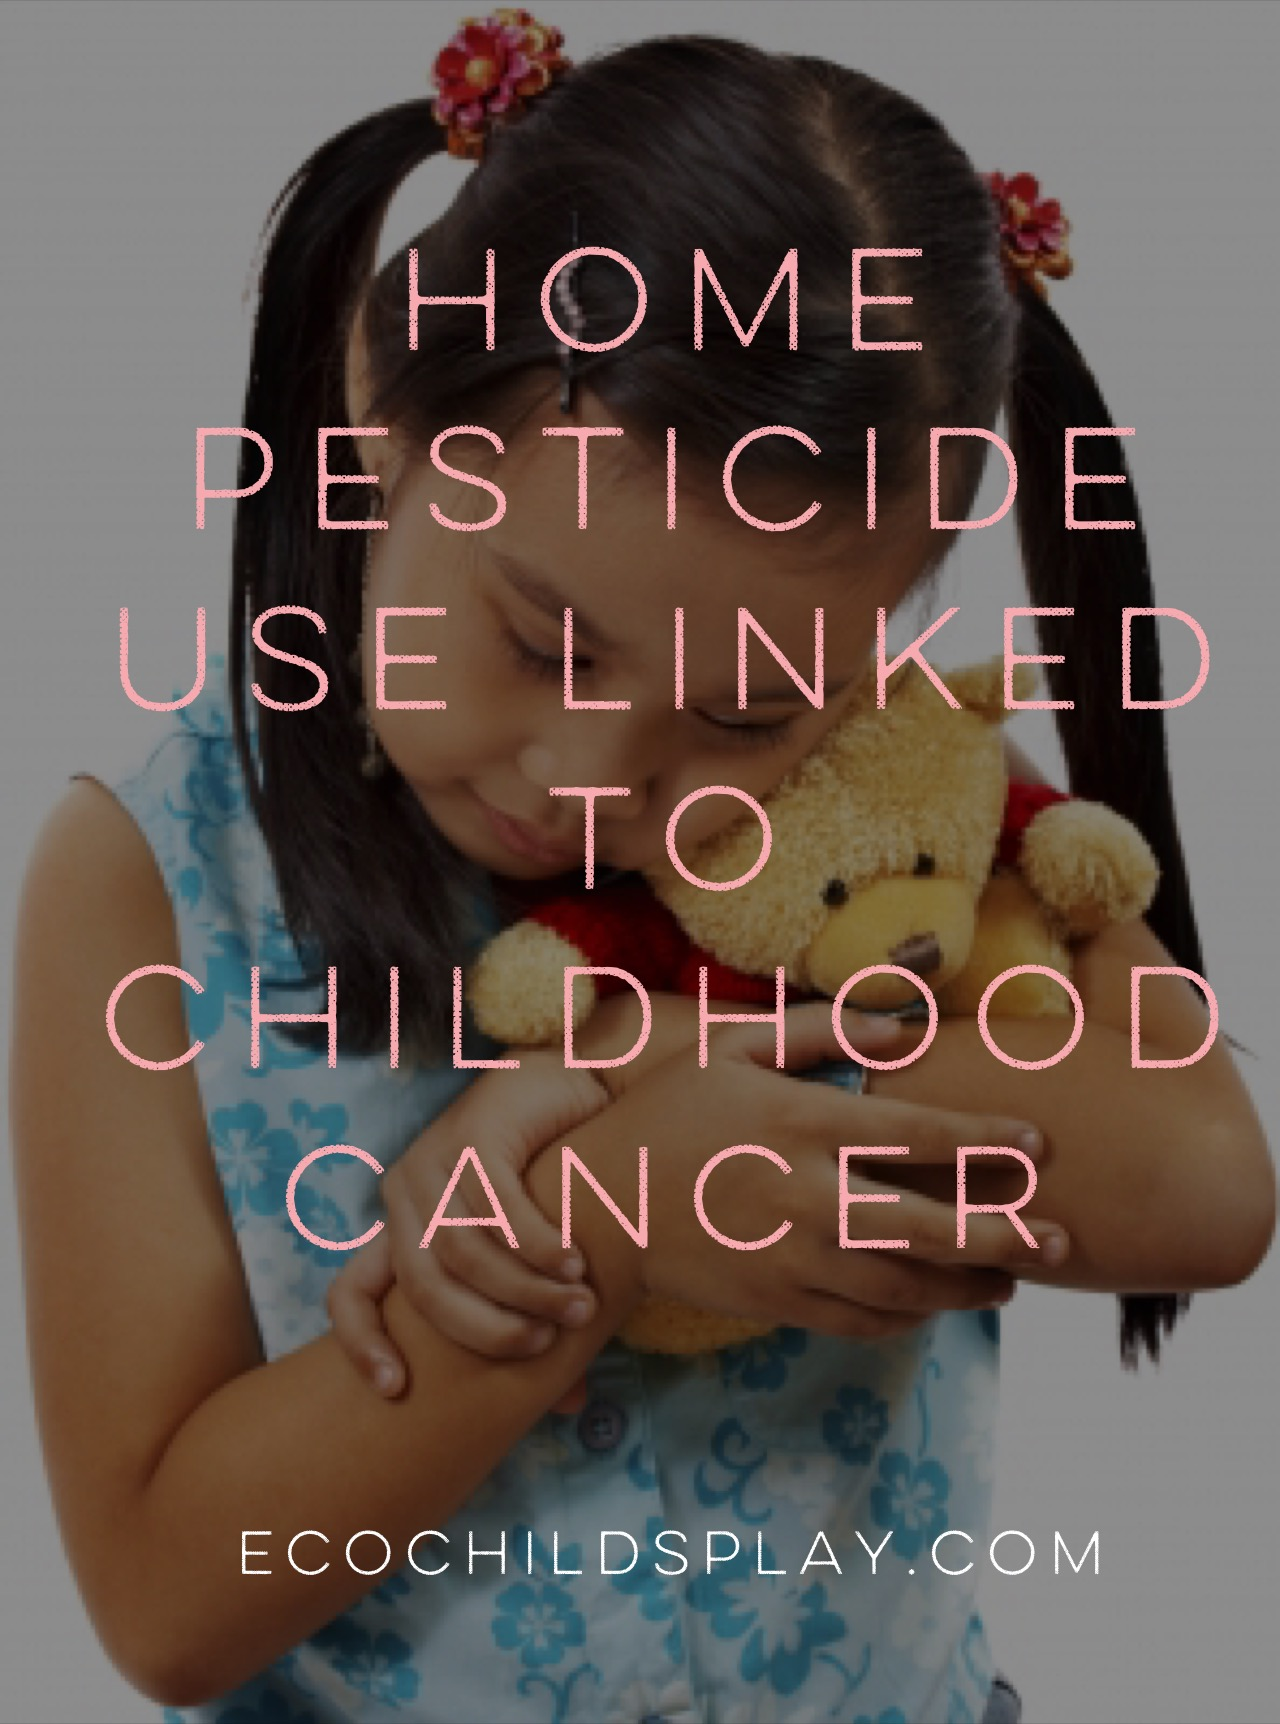 Report Pesticide exposure linked to childhood cancer